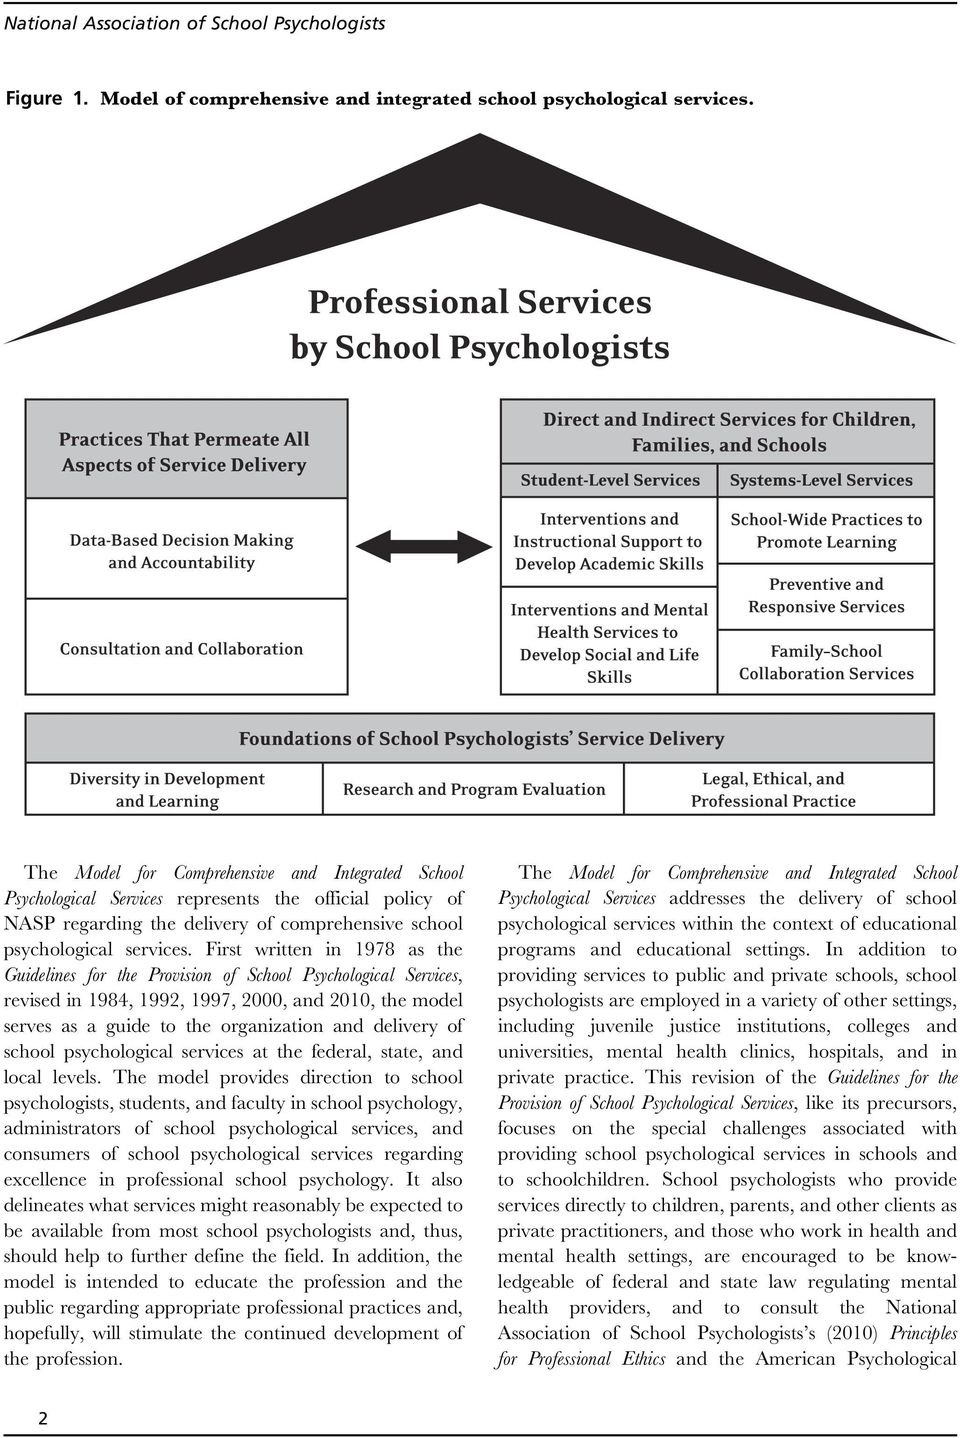 First written in 1978 as the Guidelines for the Provision of School Psychological Services, revised in 1984, 1992, 1997, 2000, and 2010, the model serves as a guide to the organization and delivery